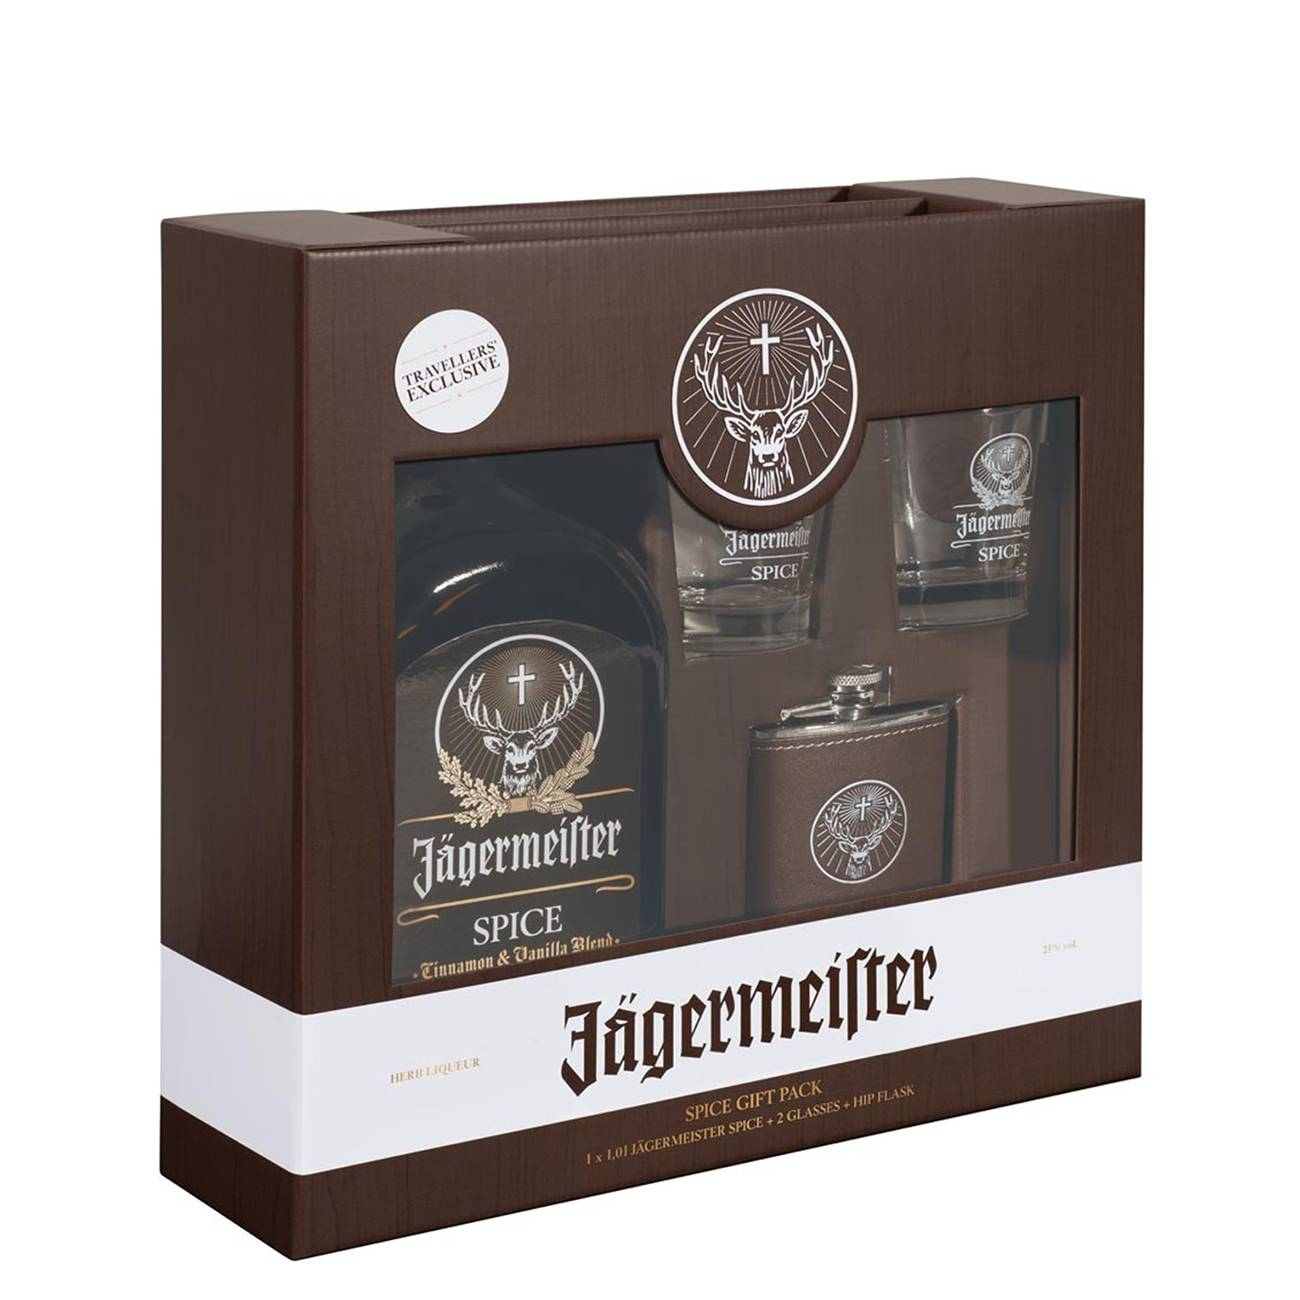 Aperitive si vermut, SPICE SET, Jagermeister